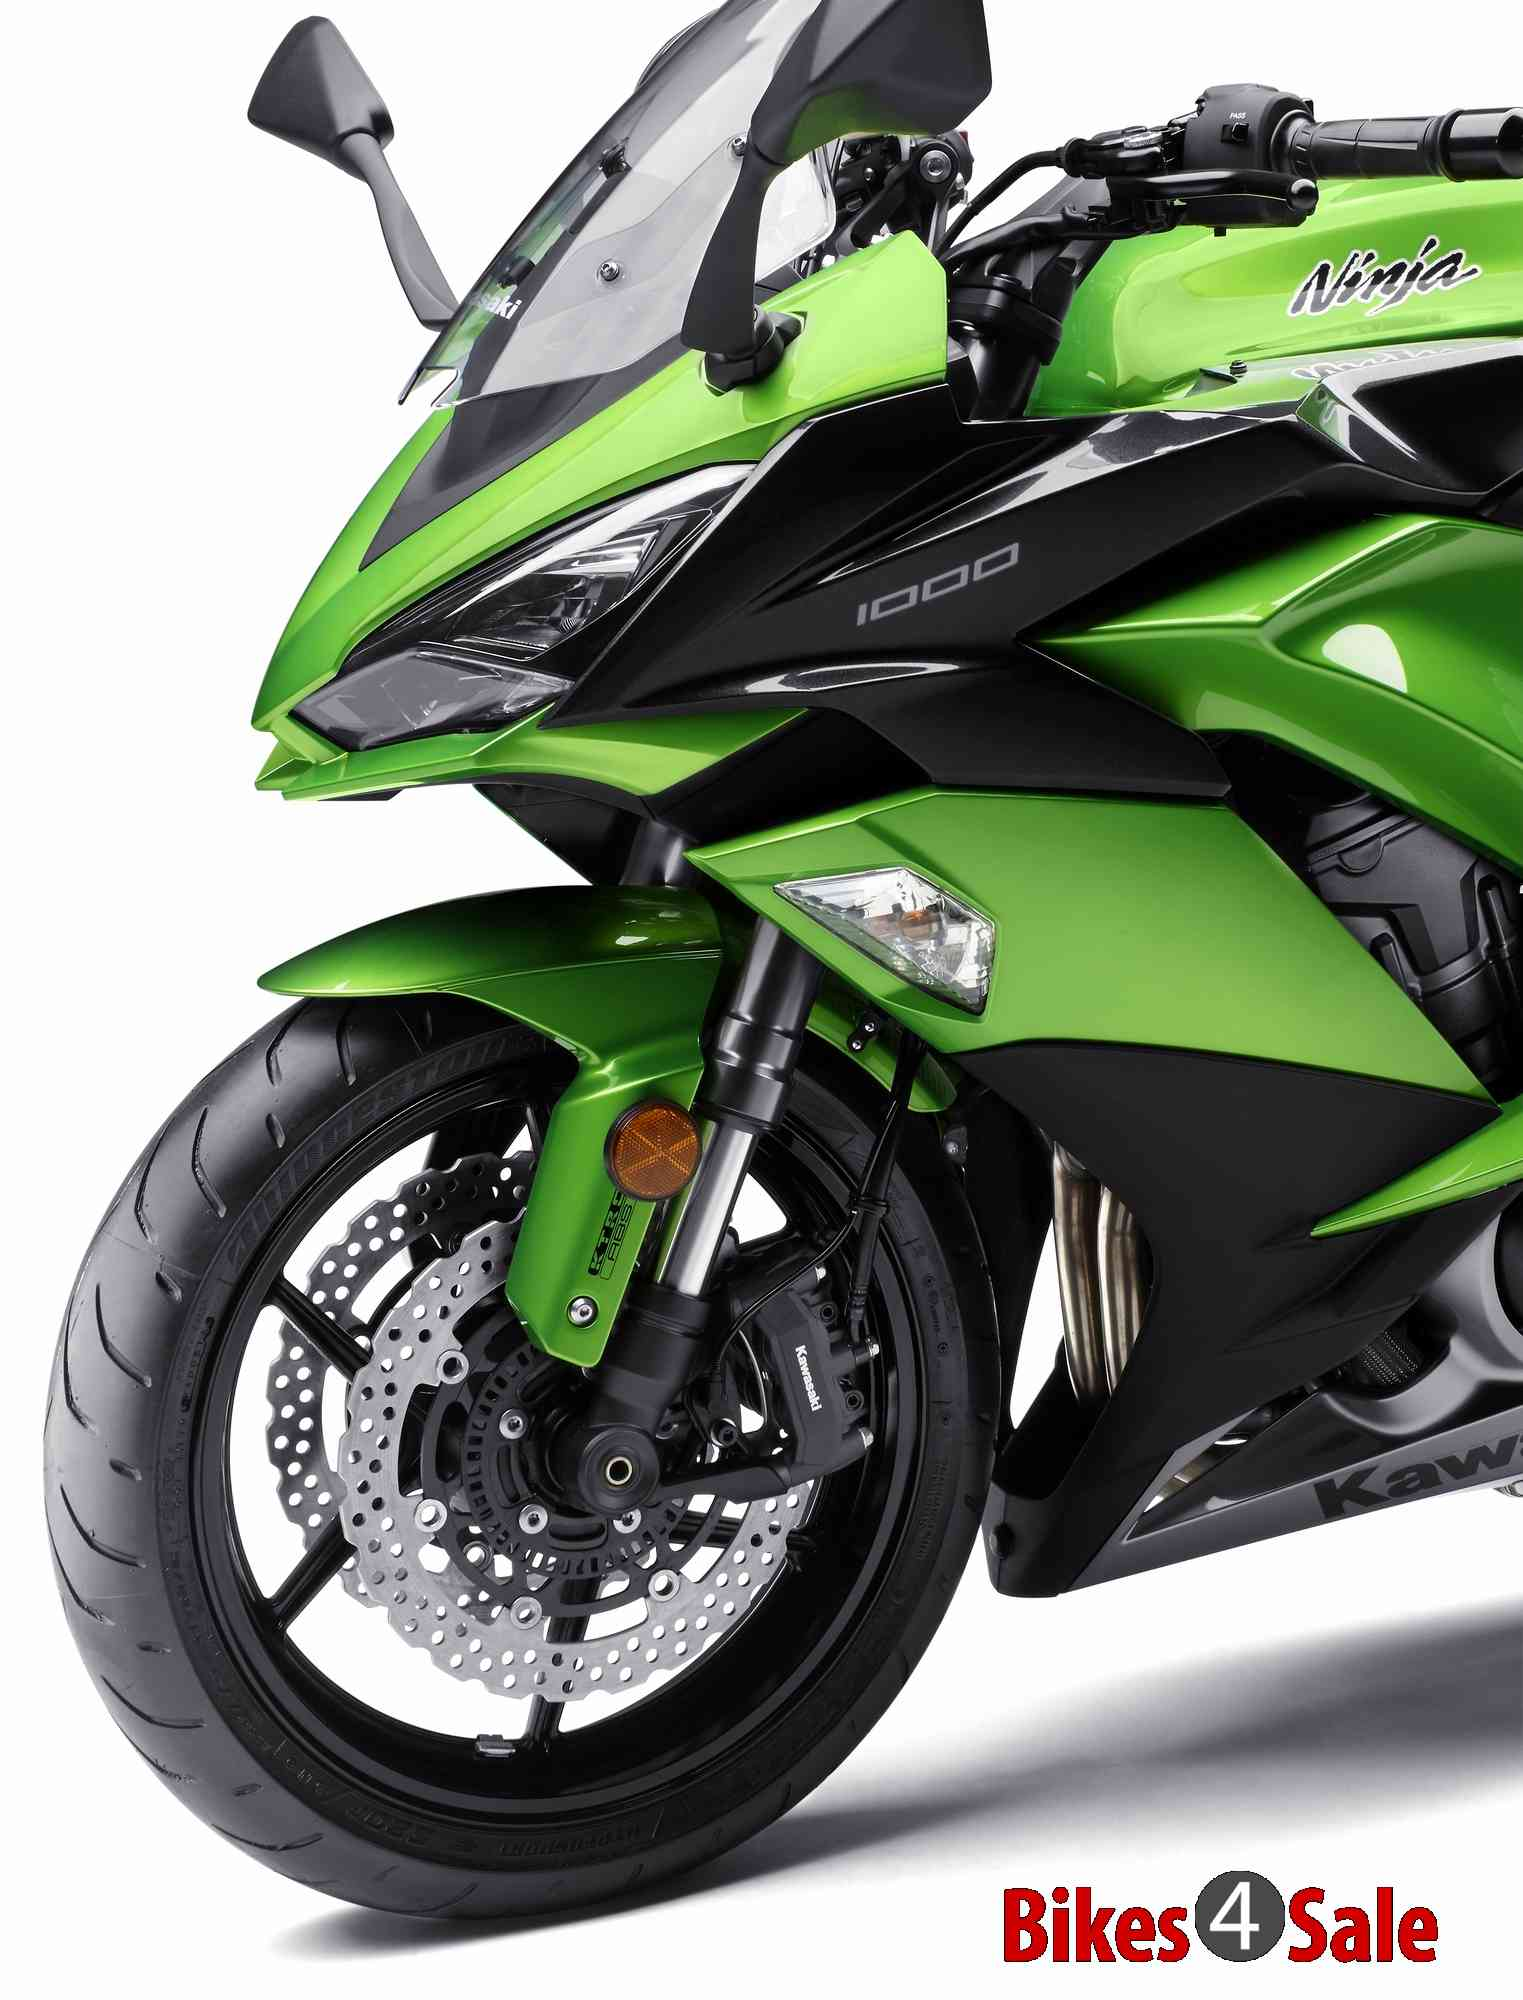 Kawasaki Launched 2017 Ninja 1000 In India Bikes4sale